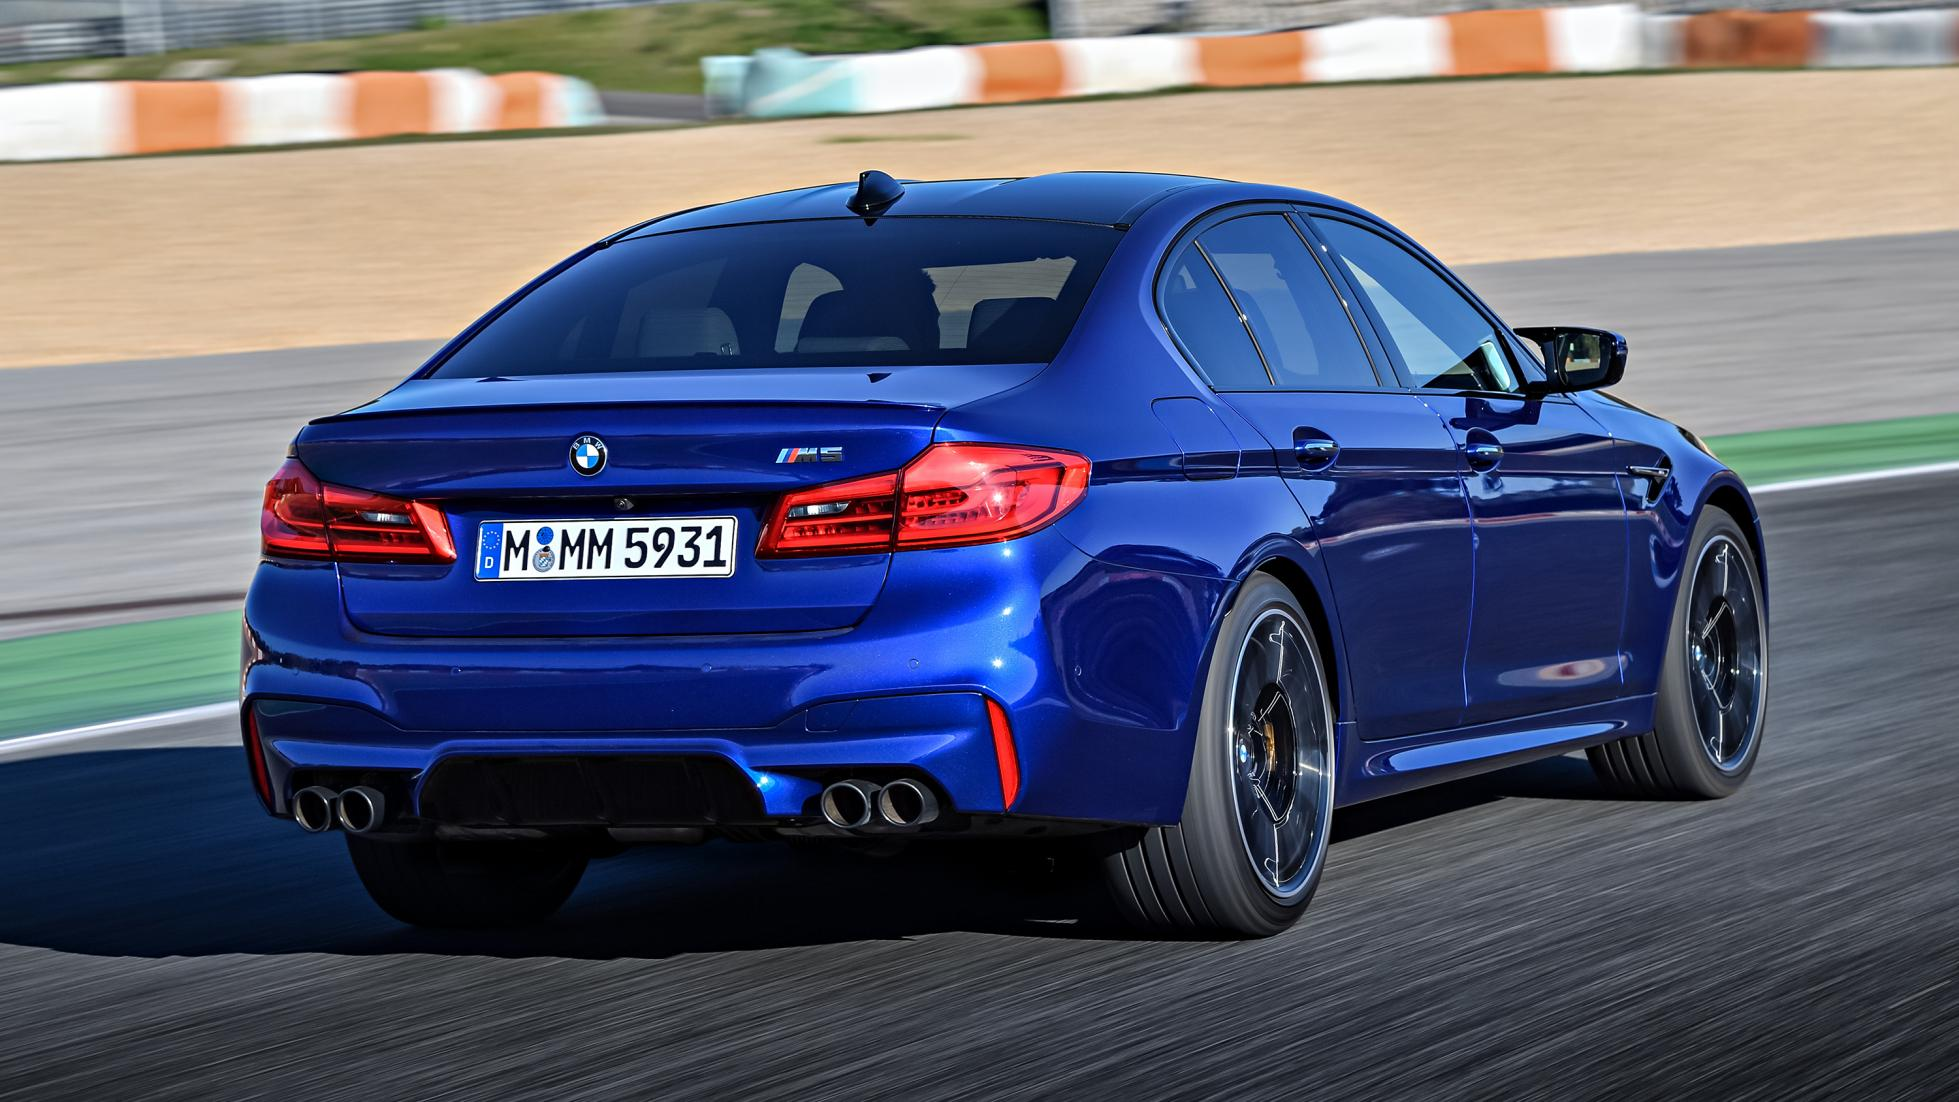 p90286943_highres_the-new-bmw-m5-11-20